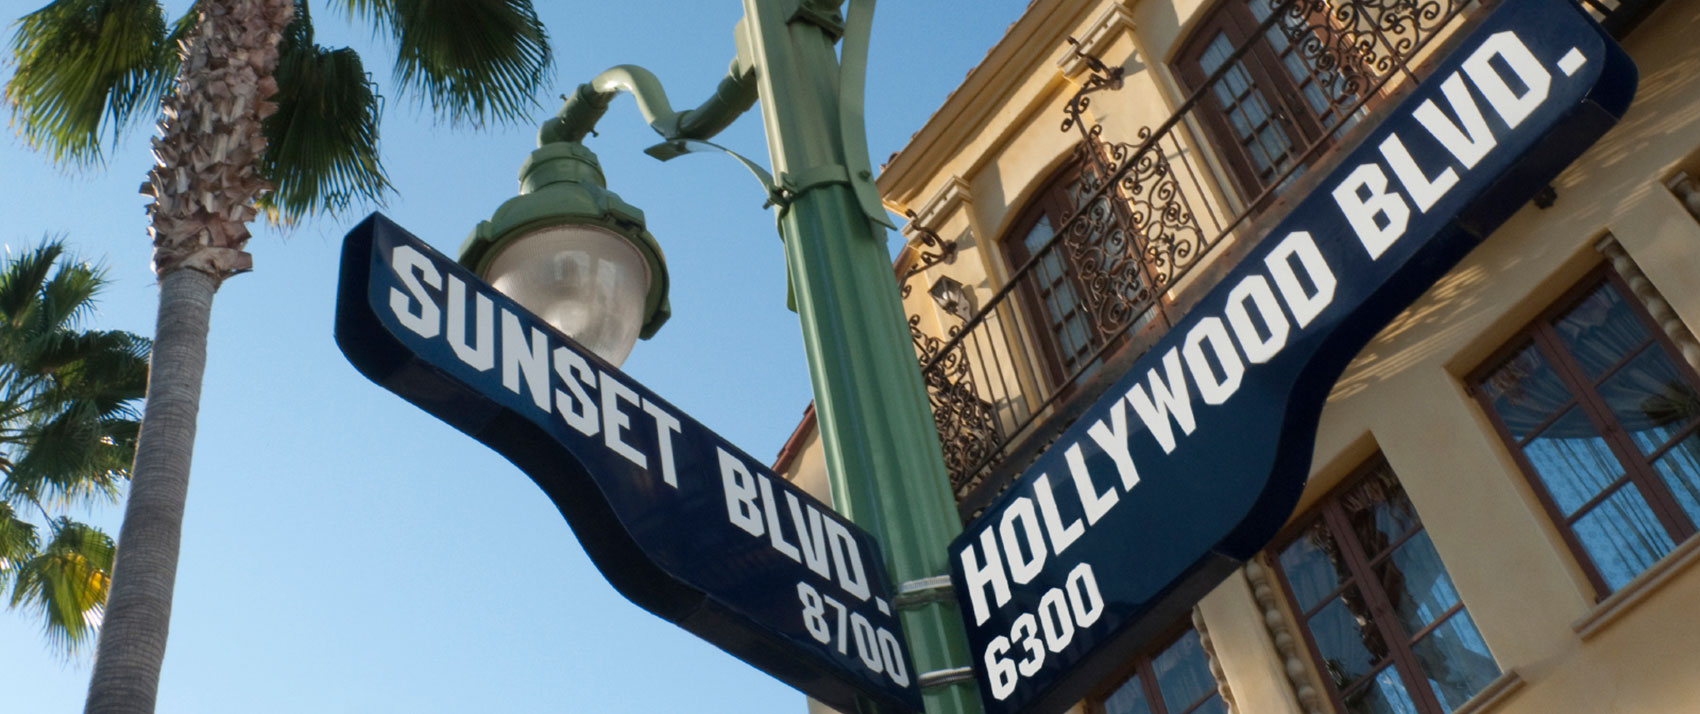 sunset and hollywood street sign